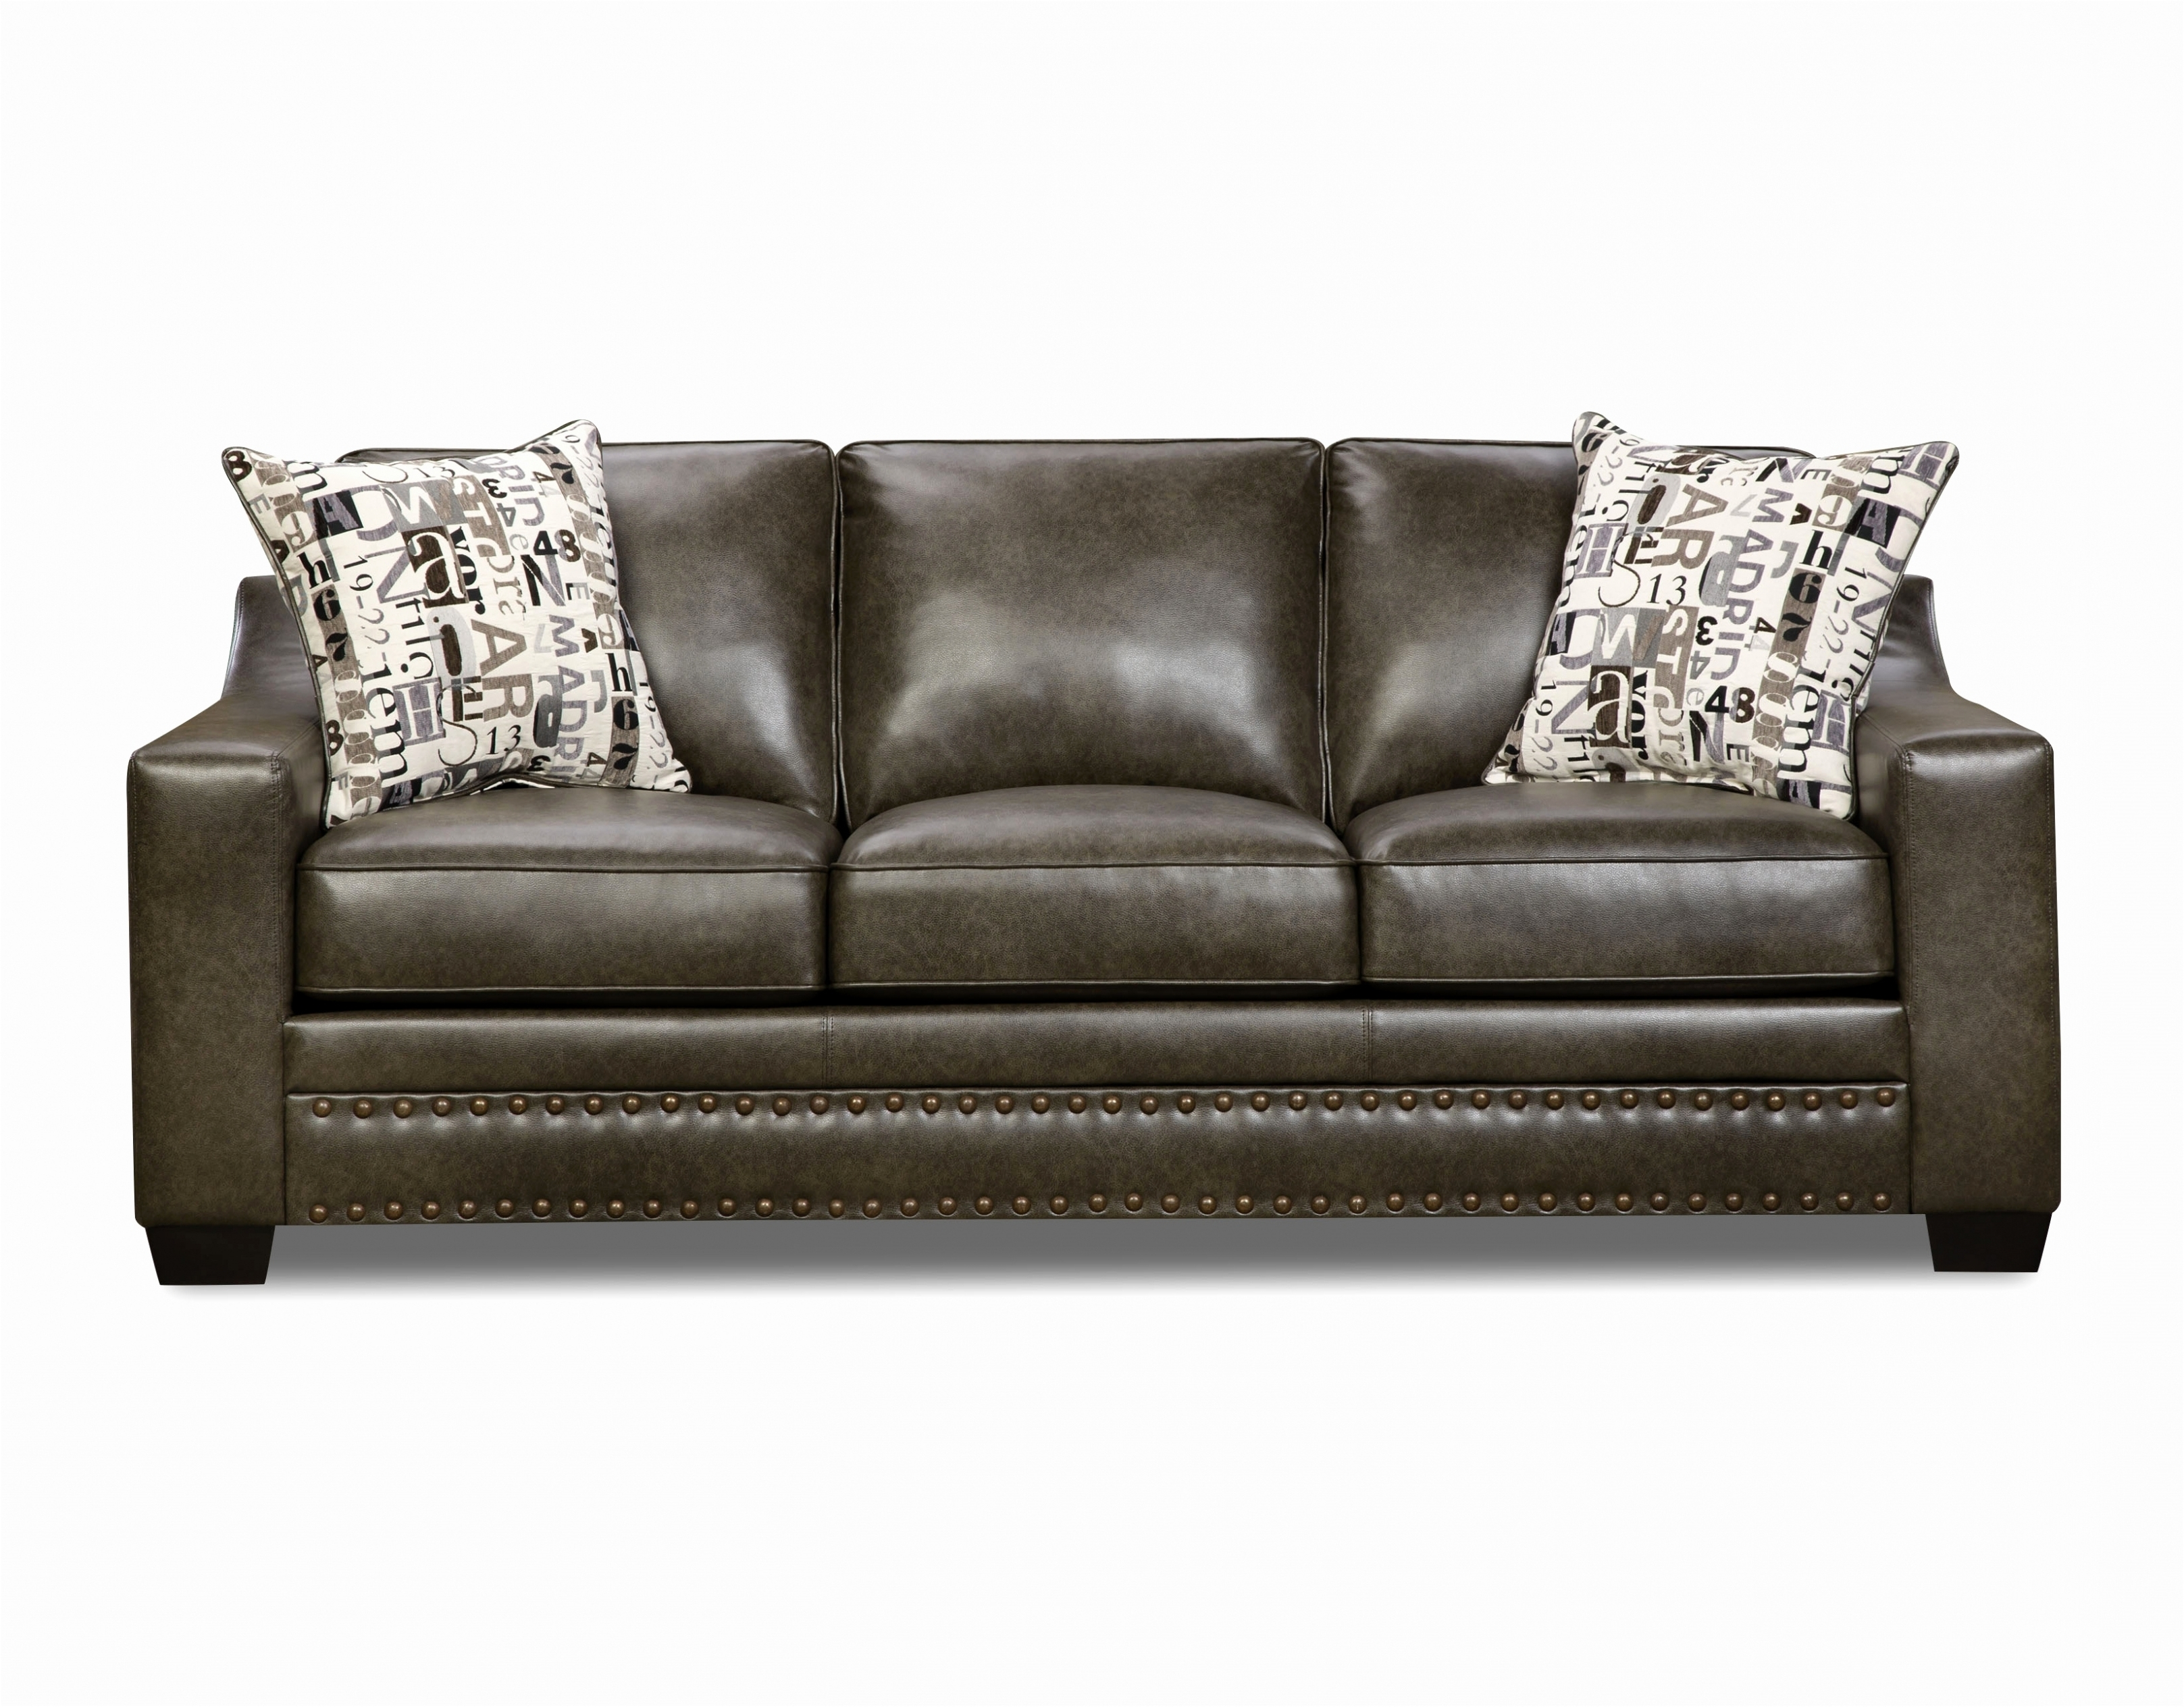 2020 Best Of Sears Sectional Sofas